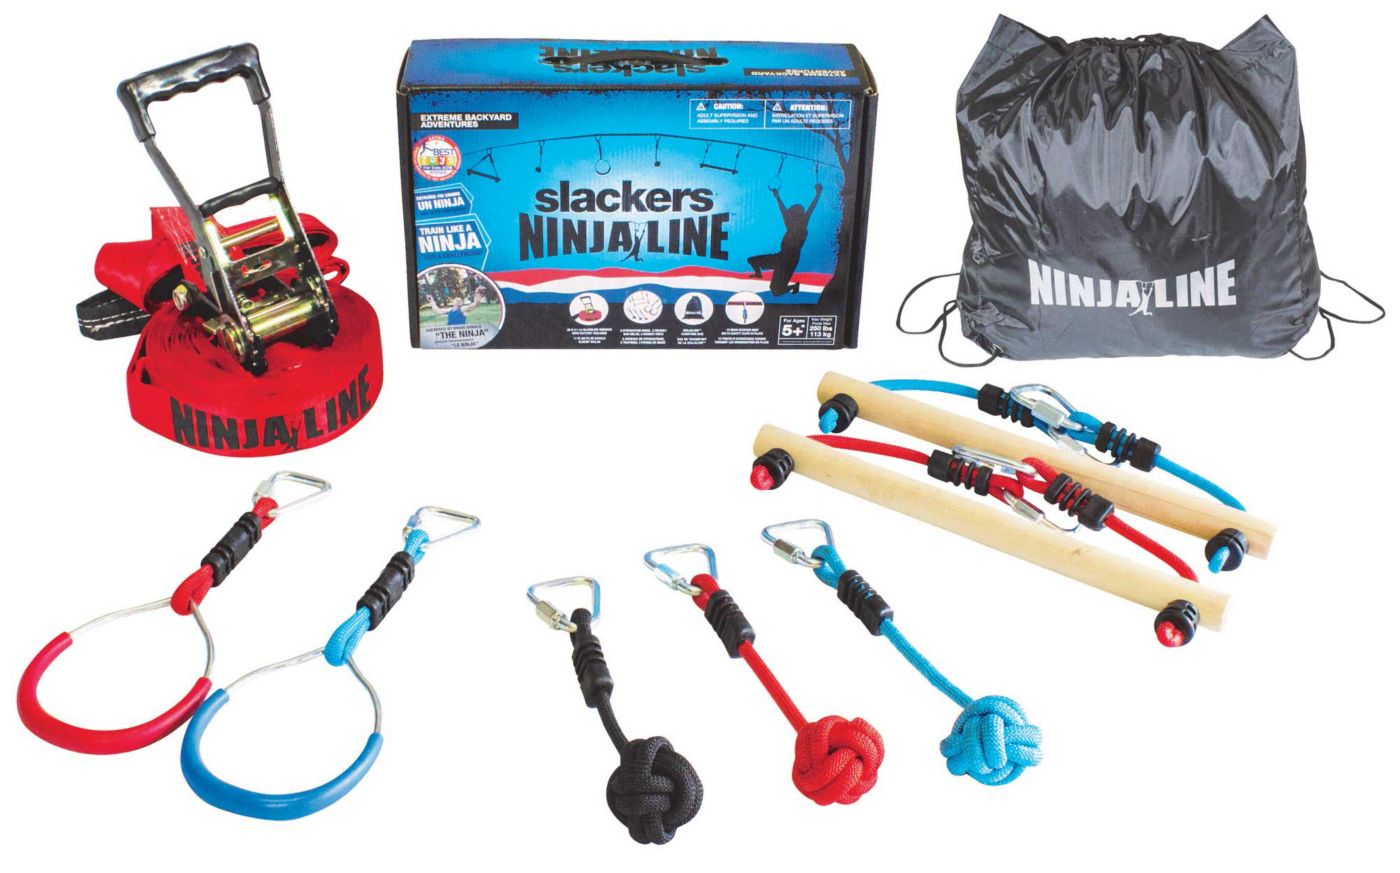 Slackers NinjaLine 36' Intro Kit with Hanging Obstacles